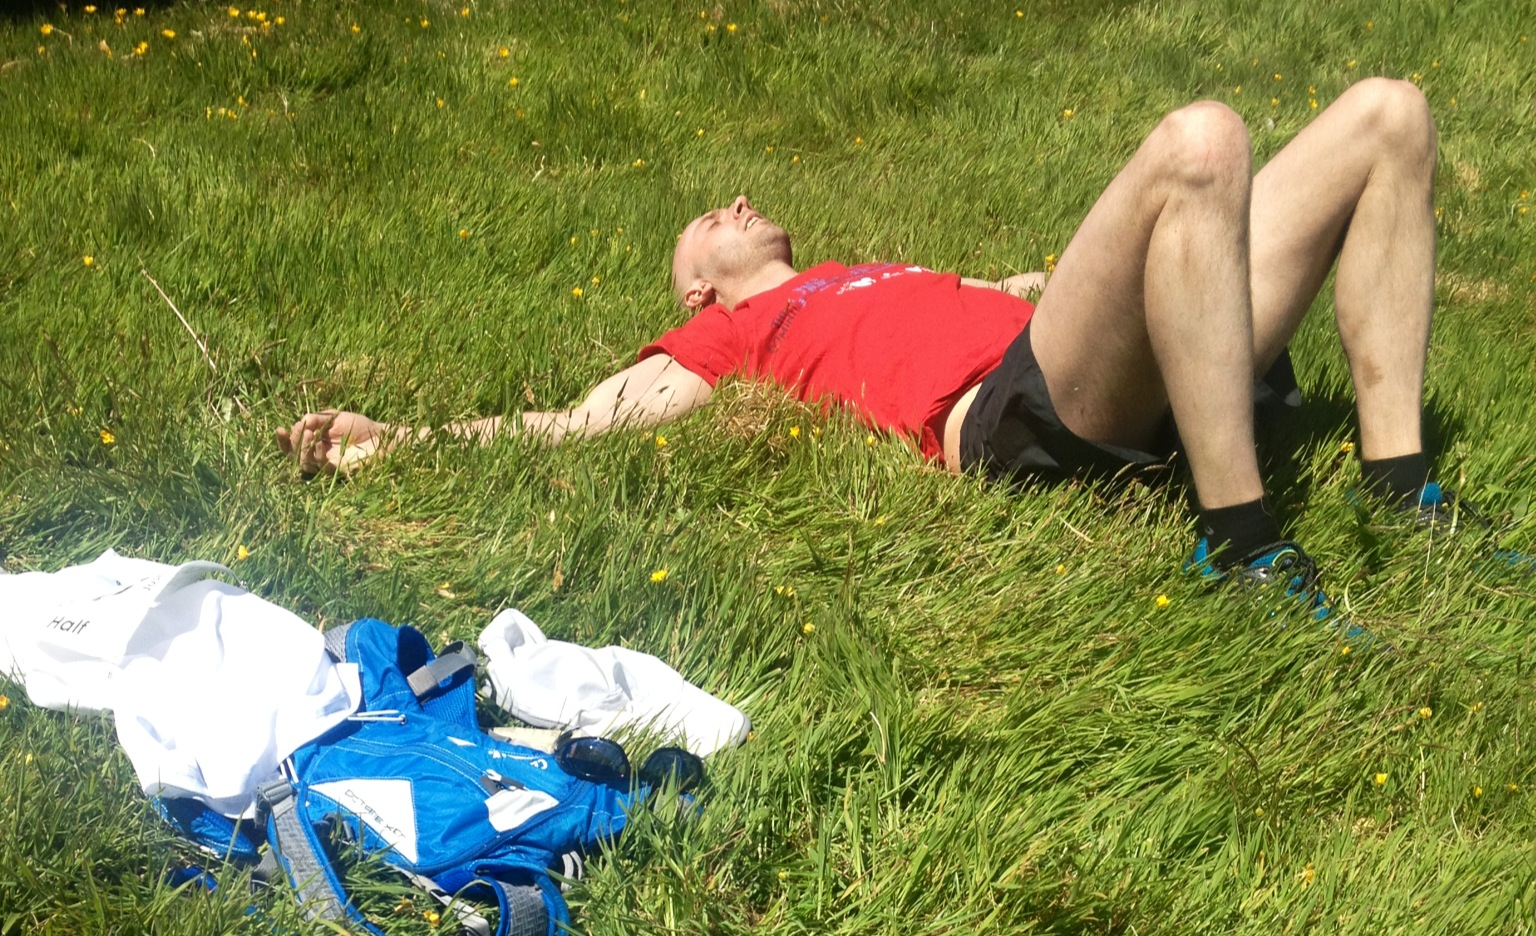 Running ultras is tiring